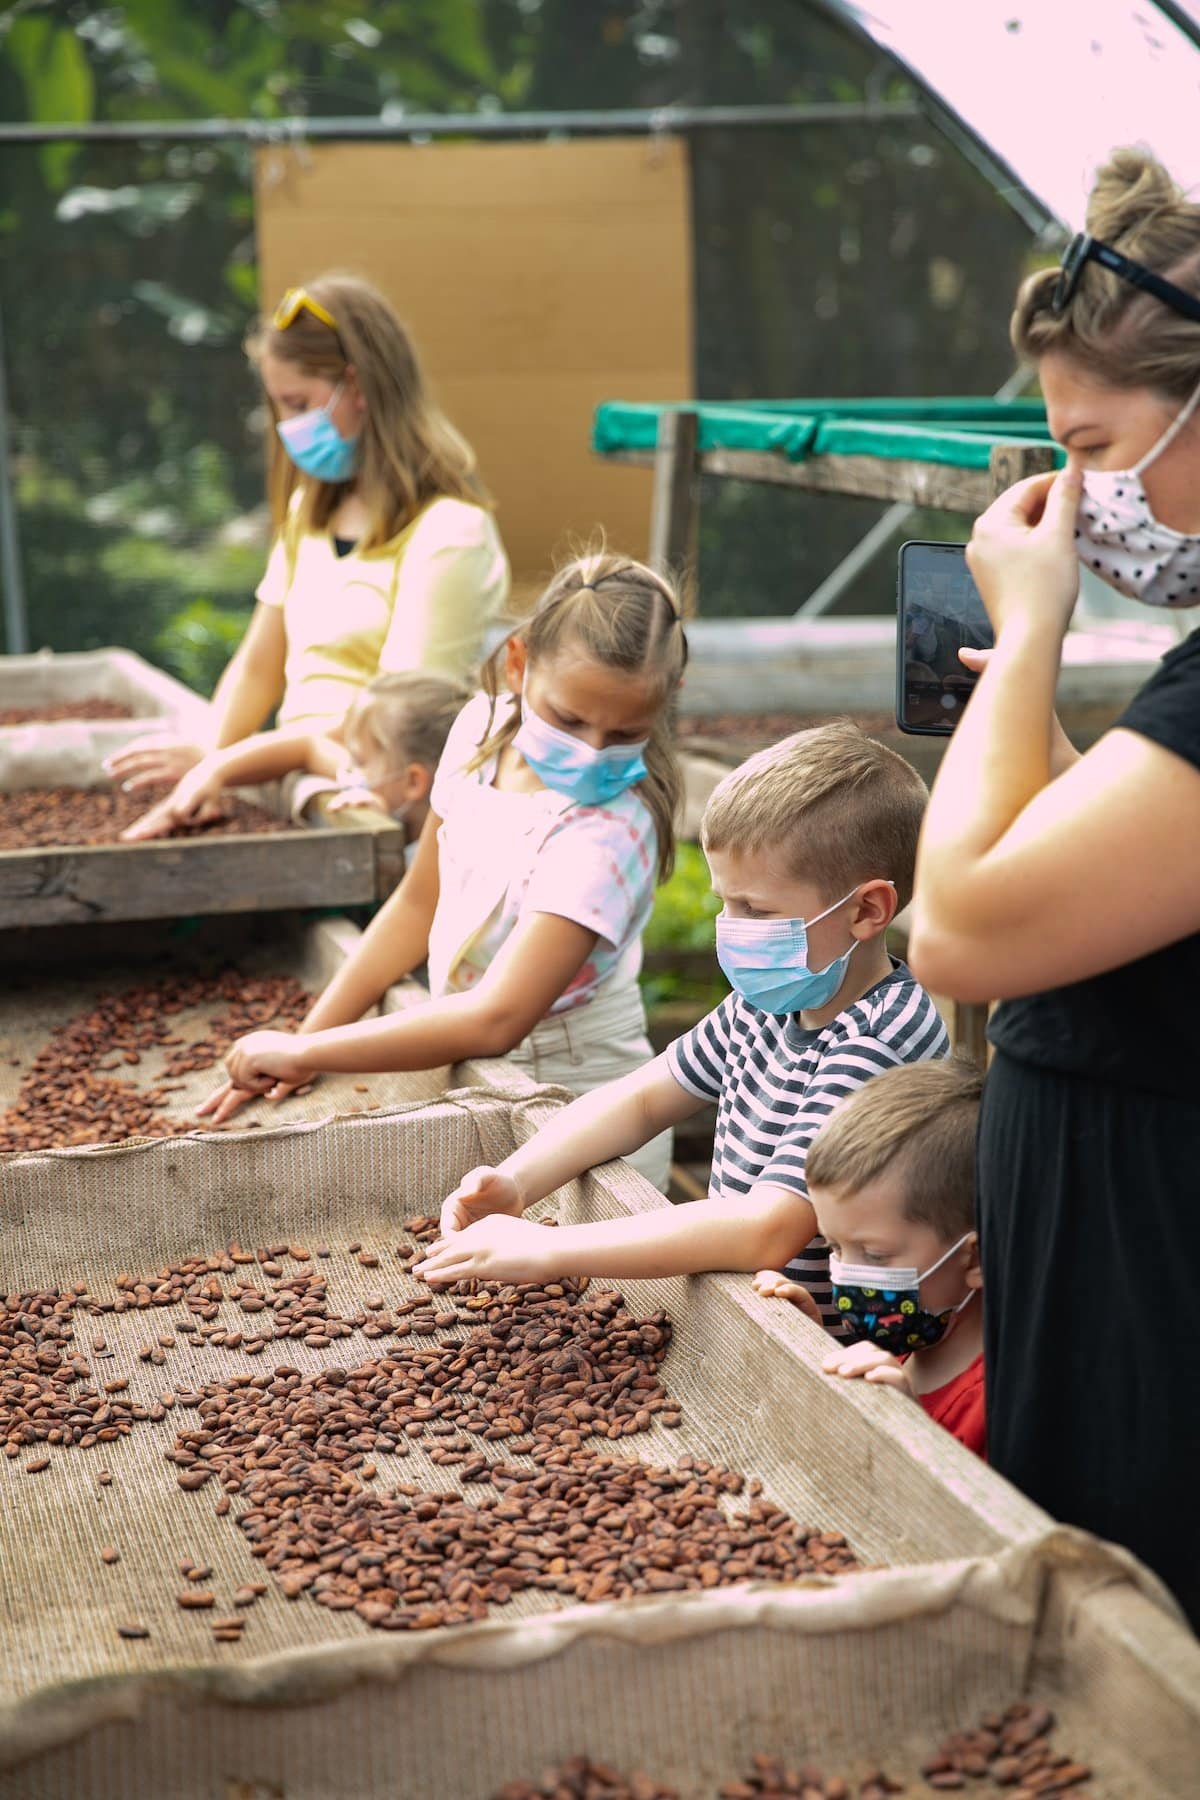 kids looking at dried cacao